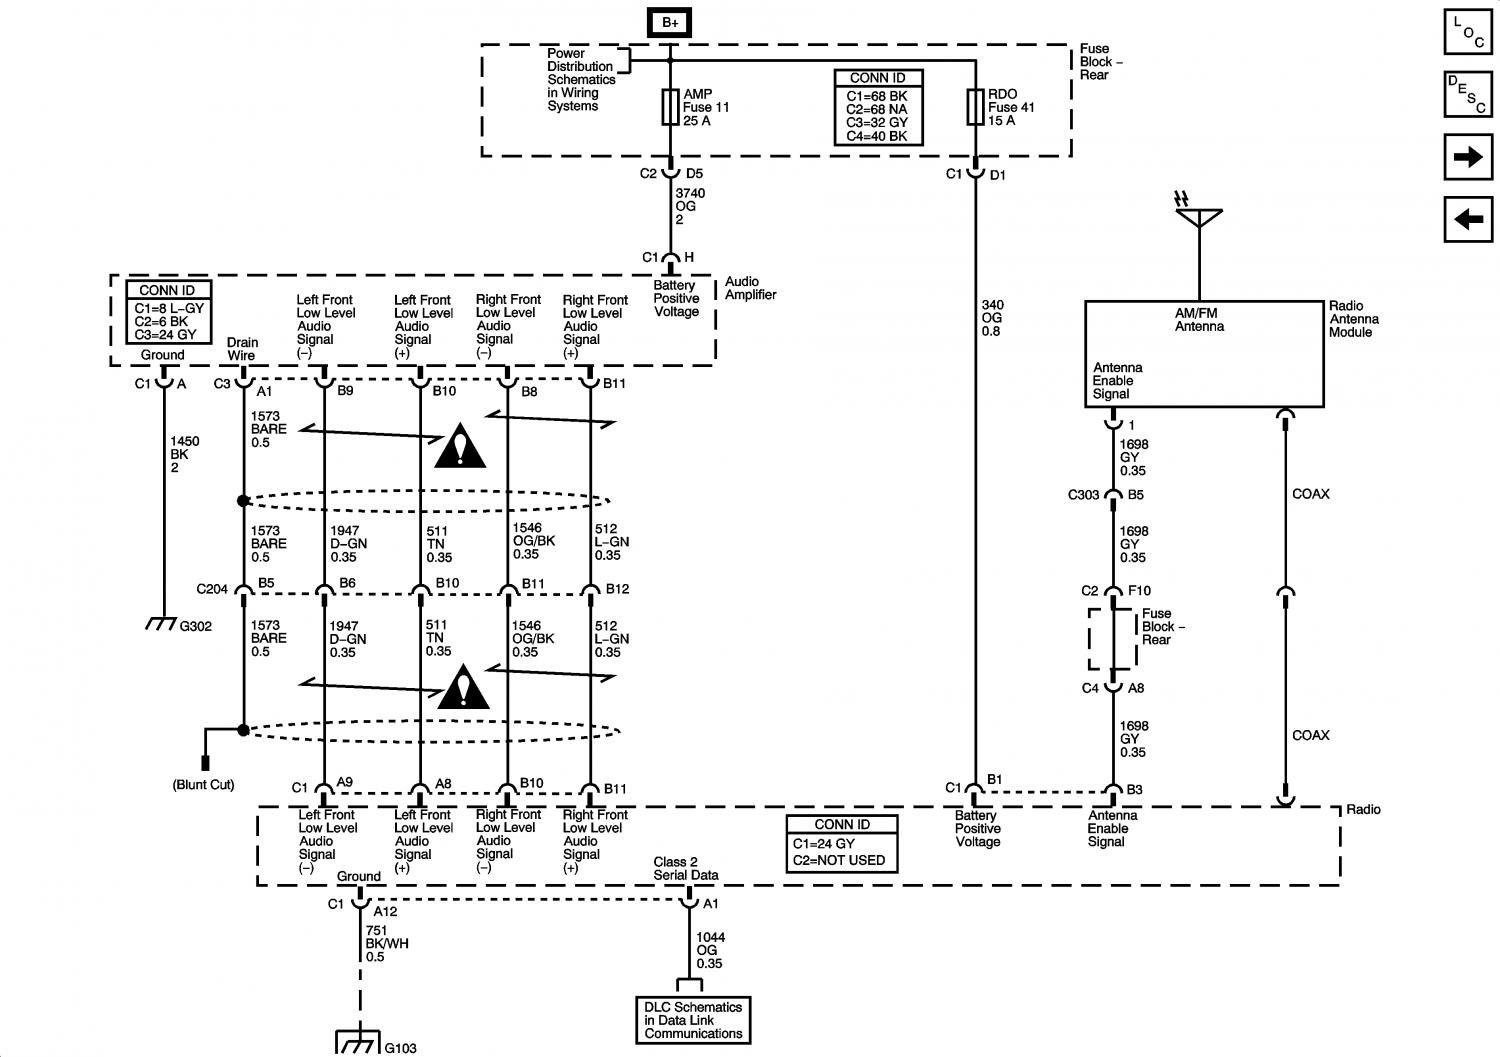 1984 monte carlo radio wiring diagram auto electrical wiring diagram1984 monte carlo radio wiring diagram